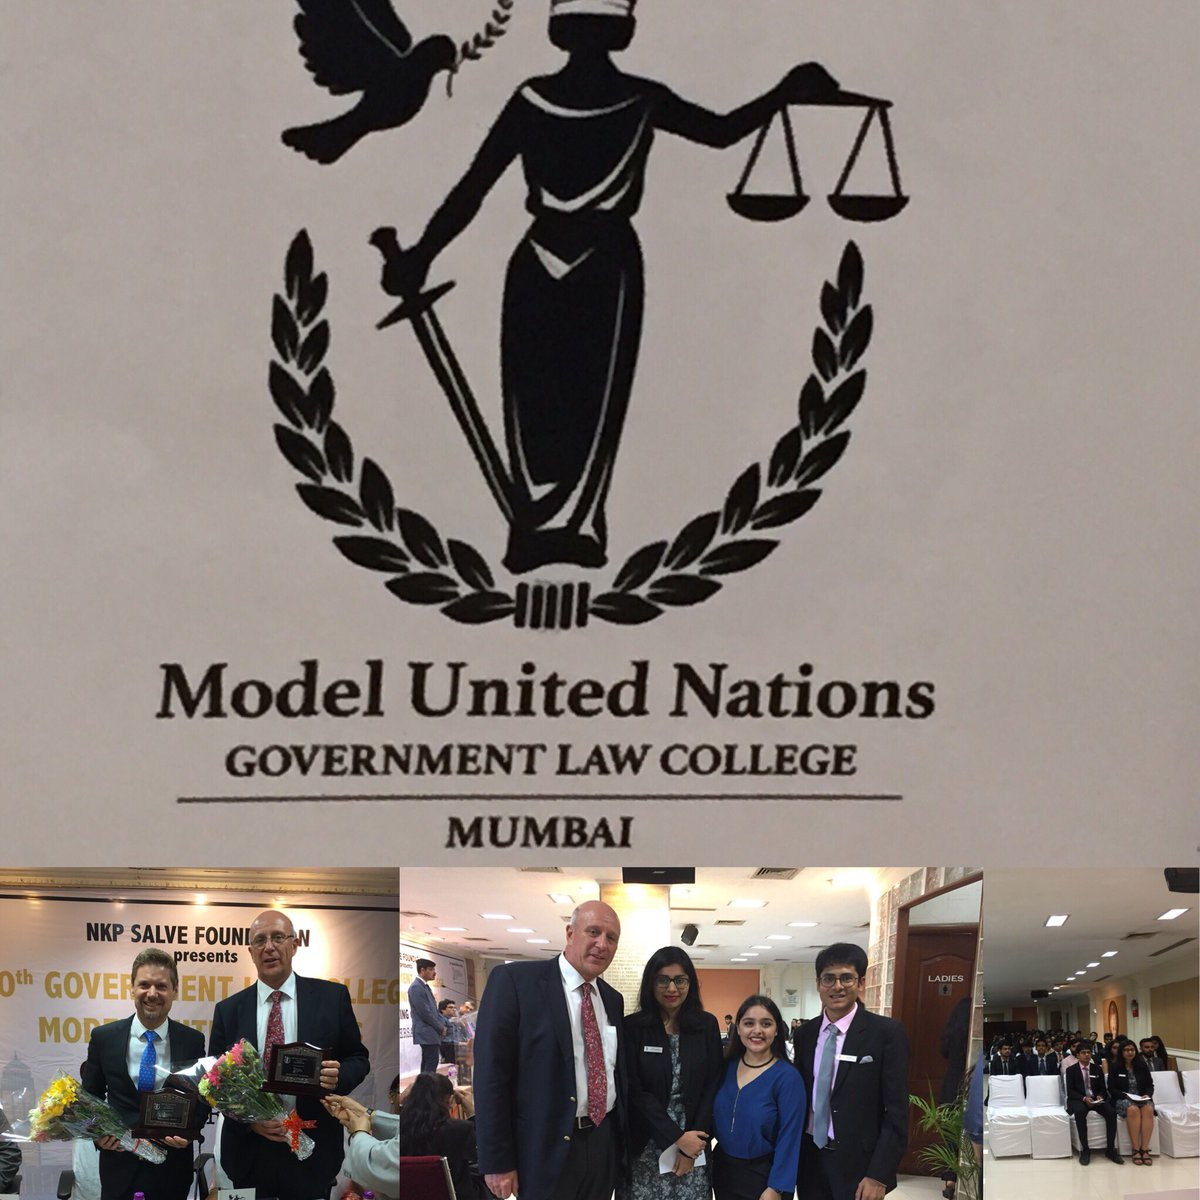 government law college model united